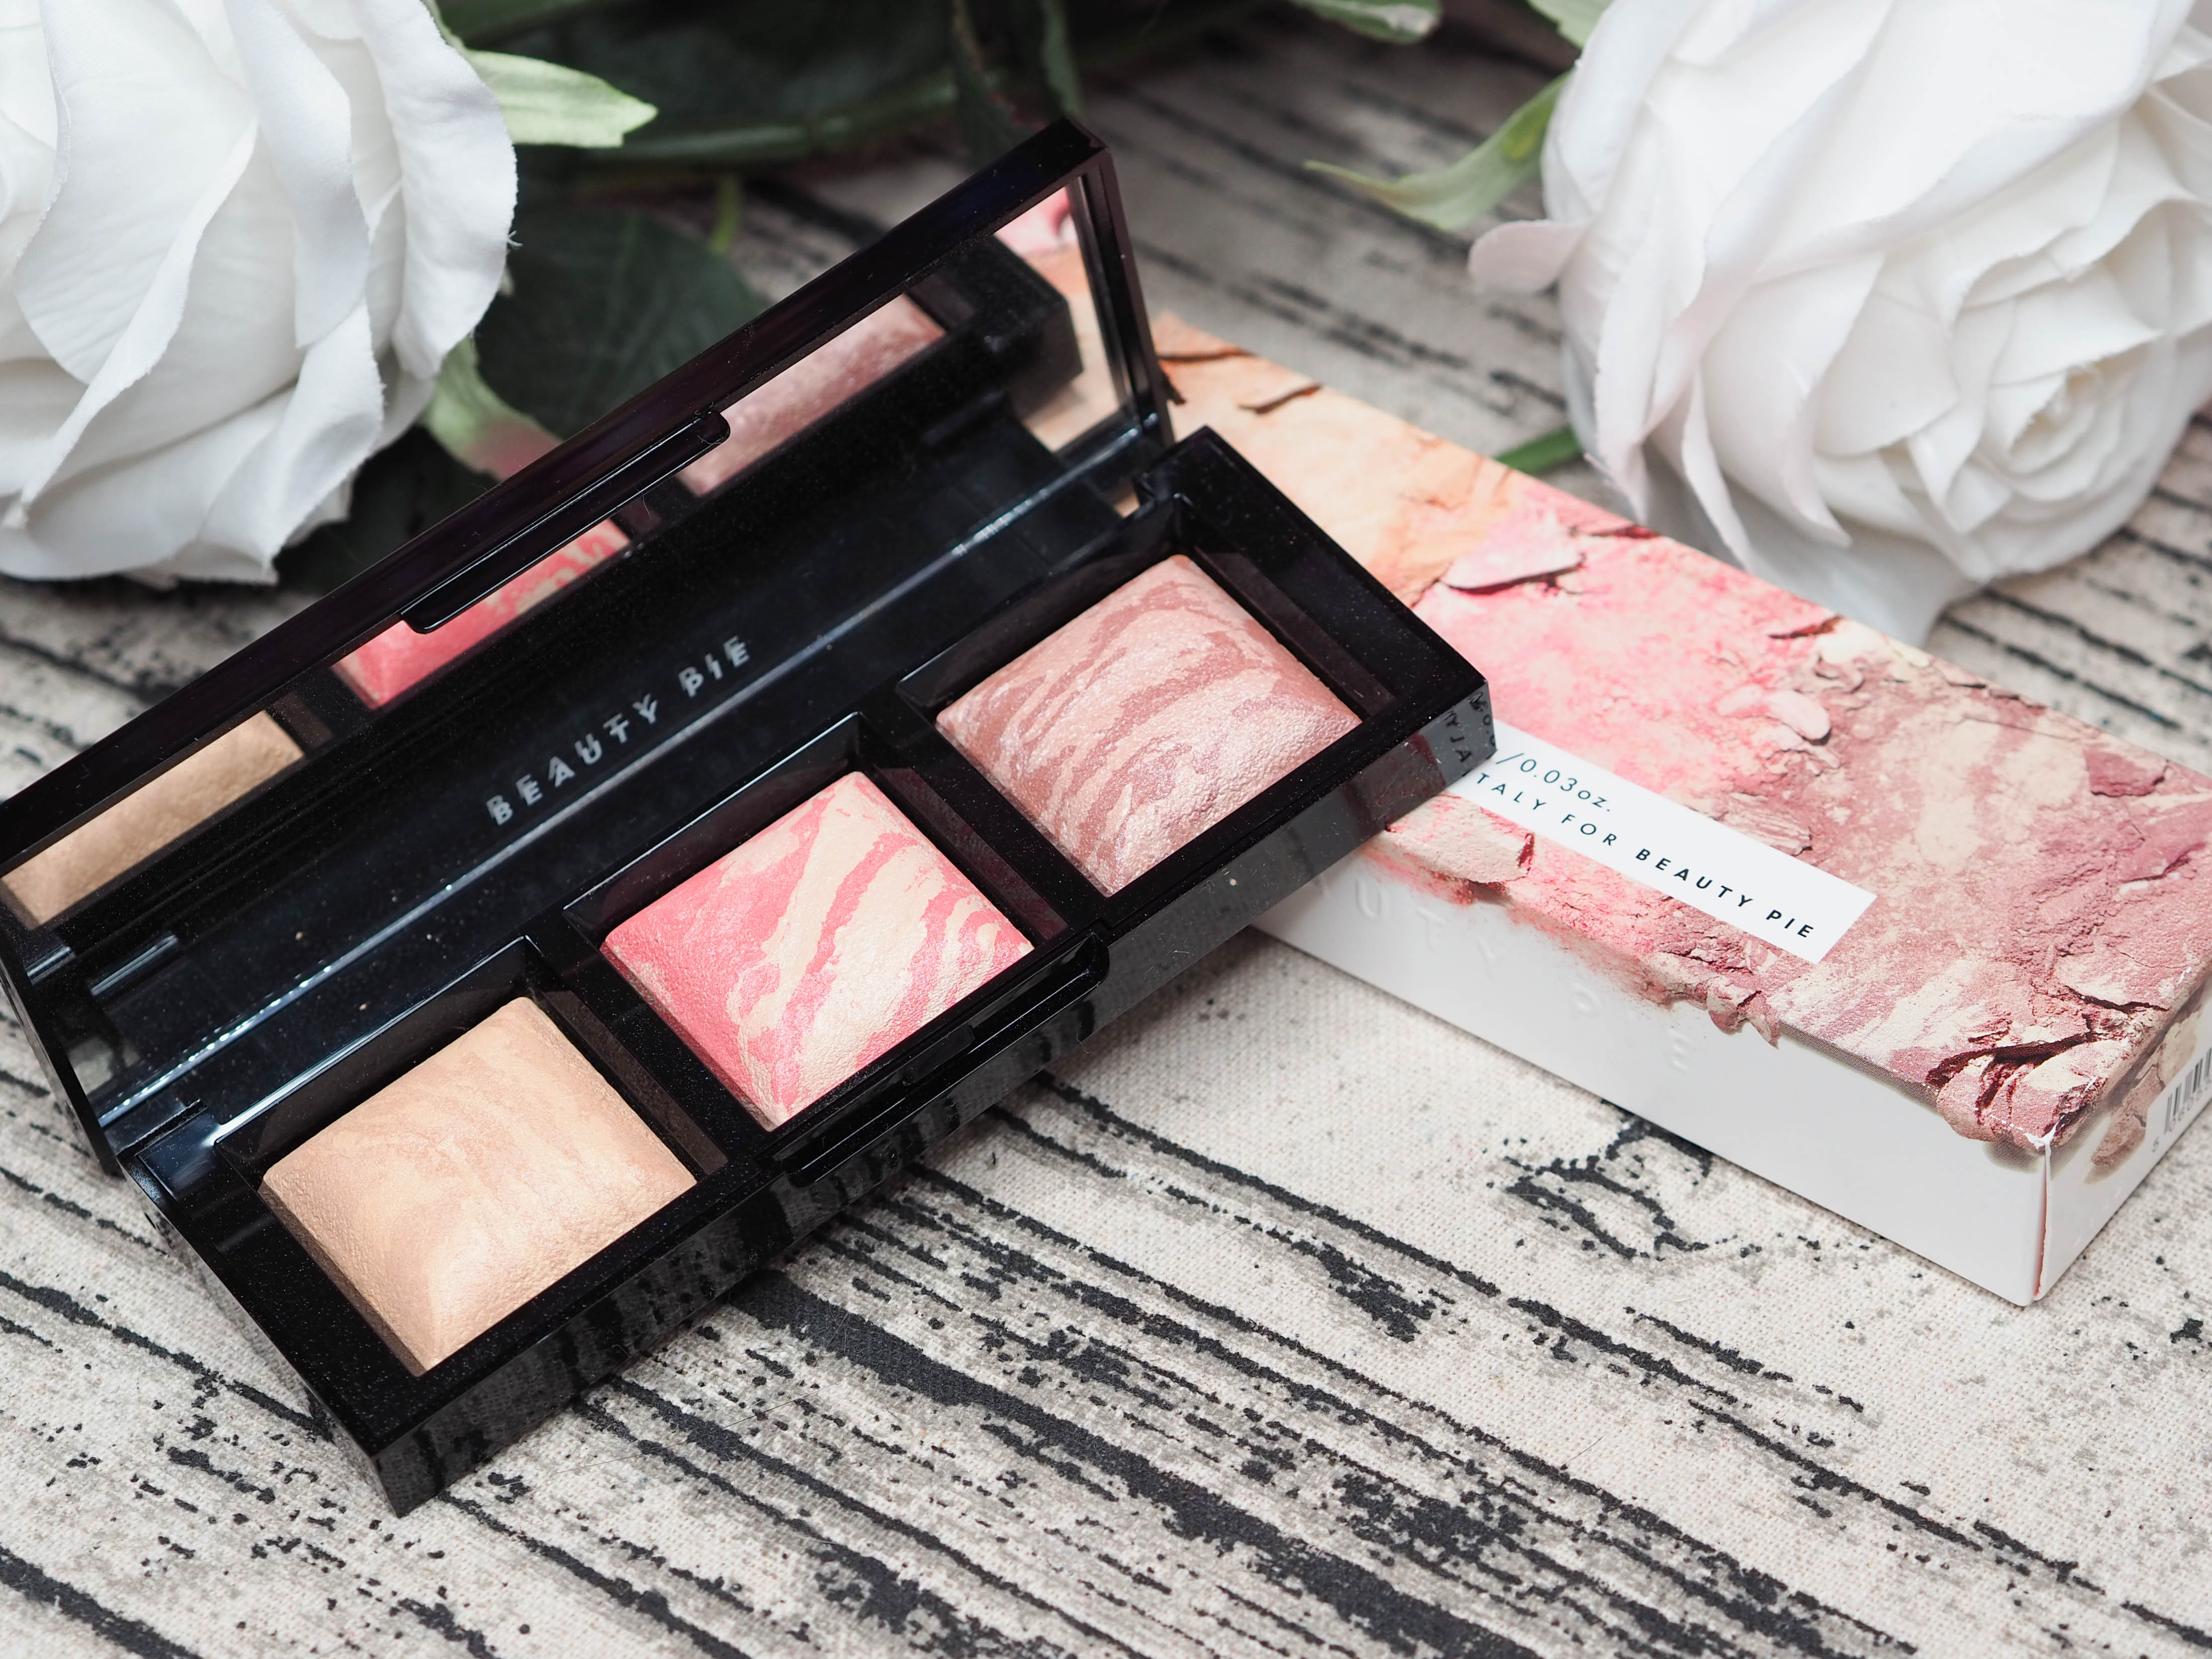 Beauty Pie Triple Beauty Good Lighting Luminous Blush Trio